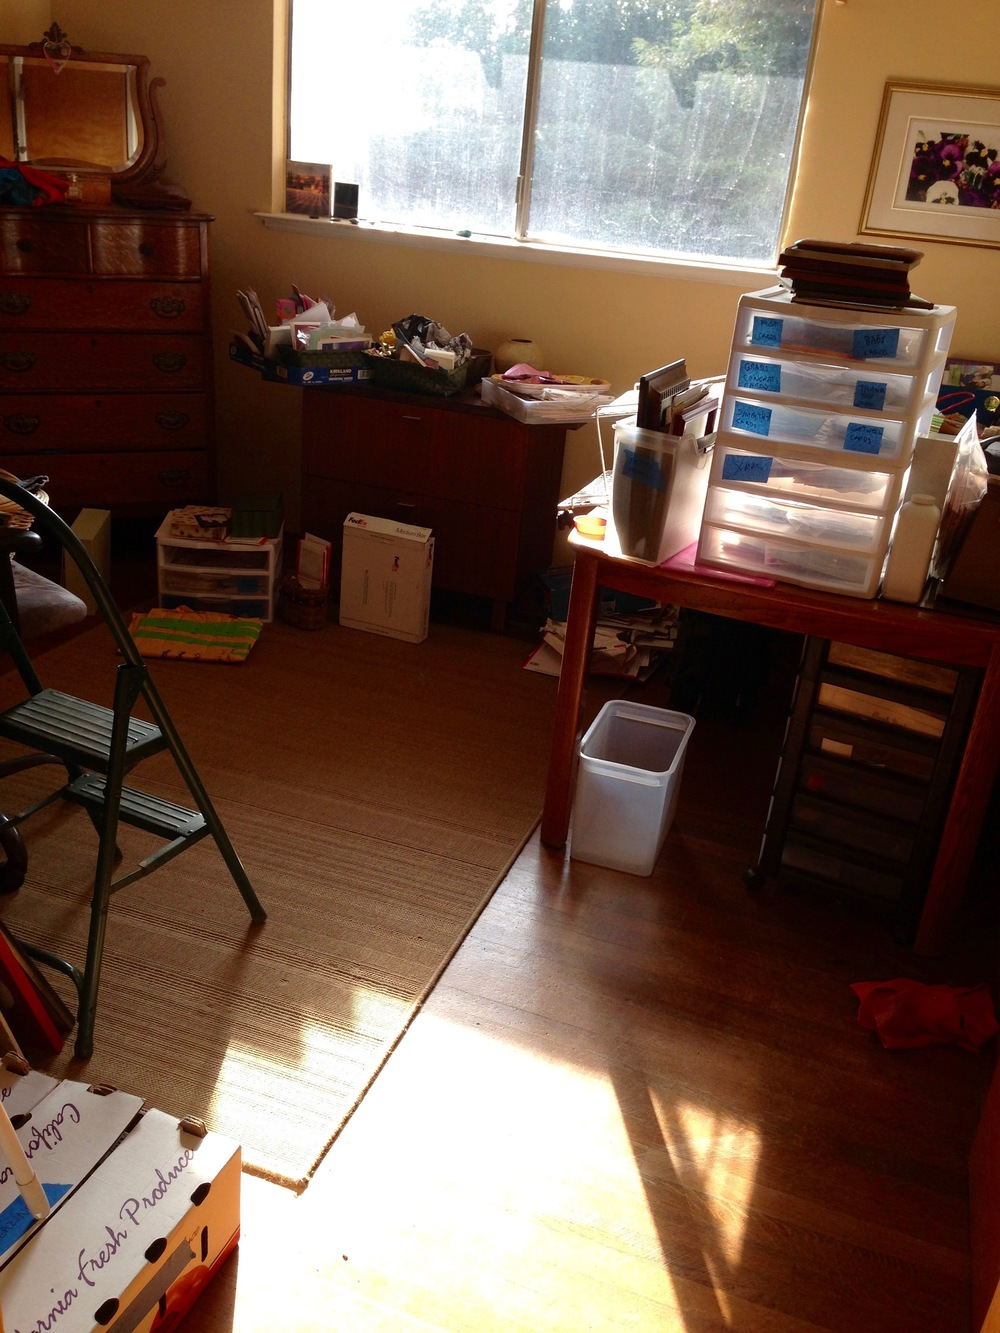 Office before being organized.